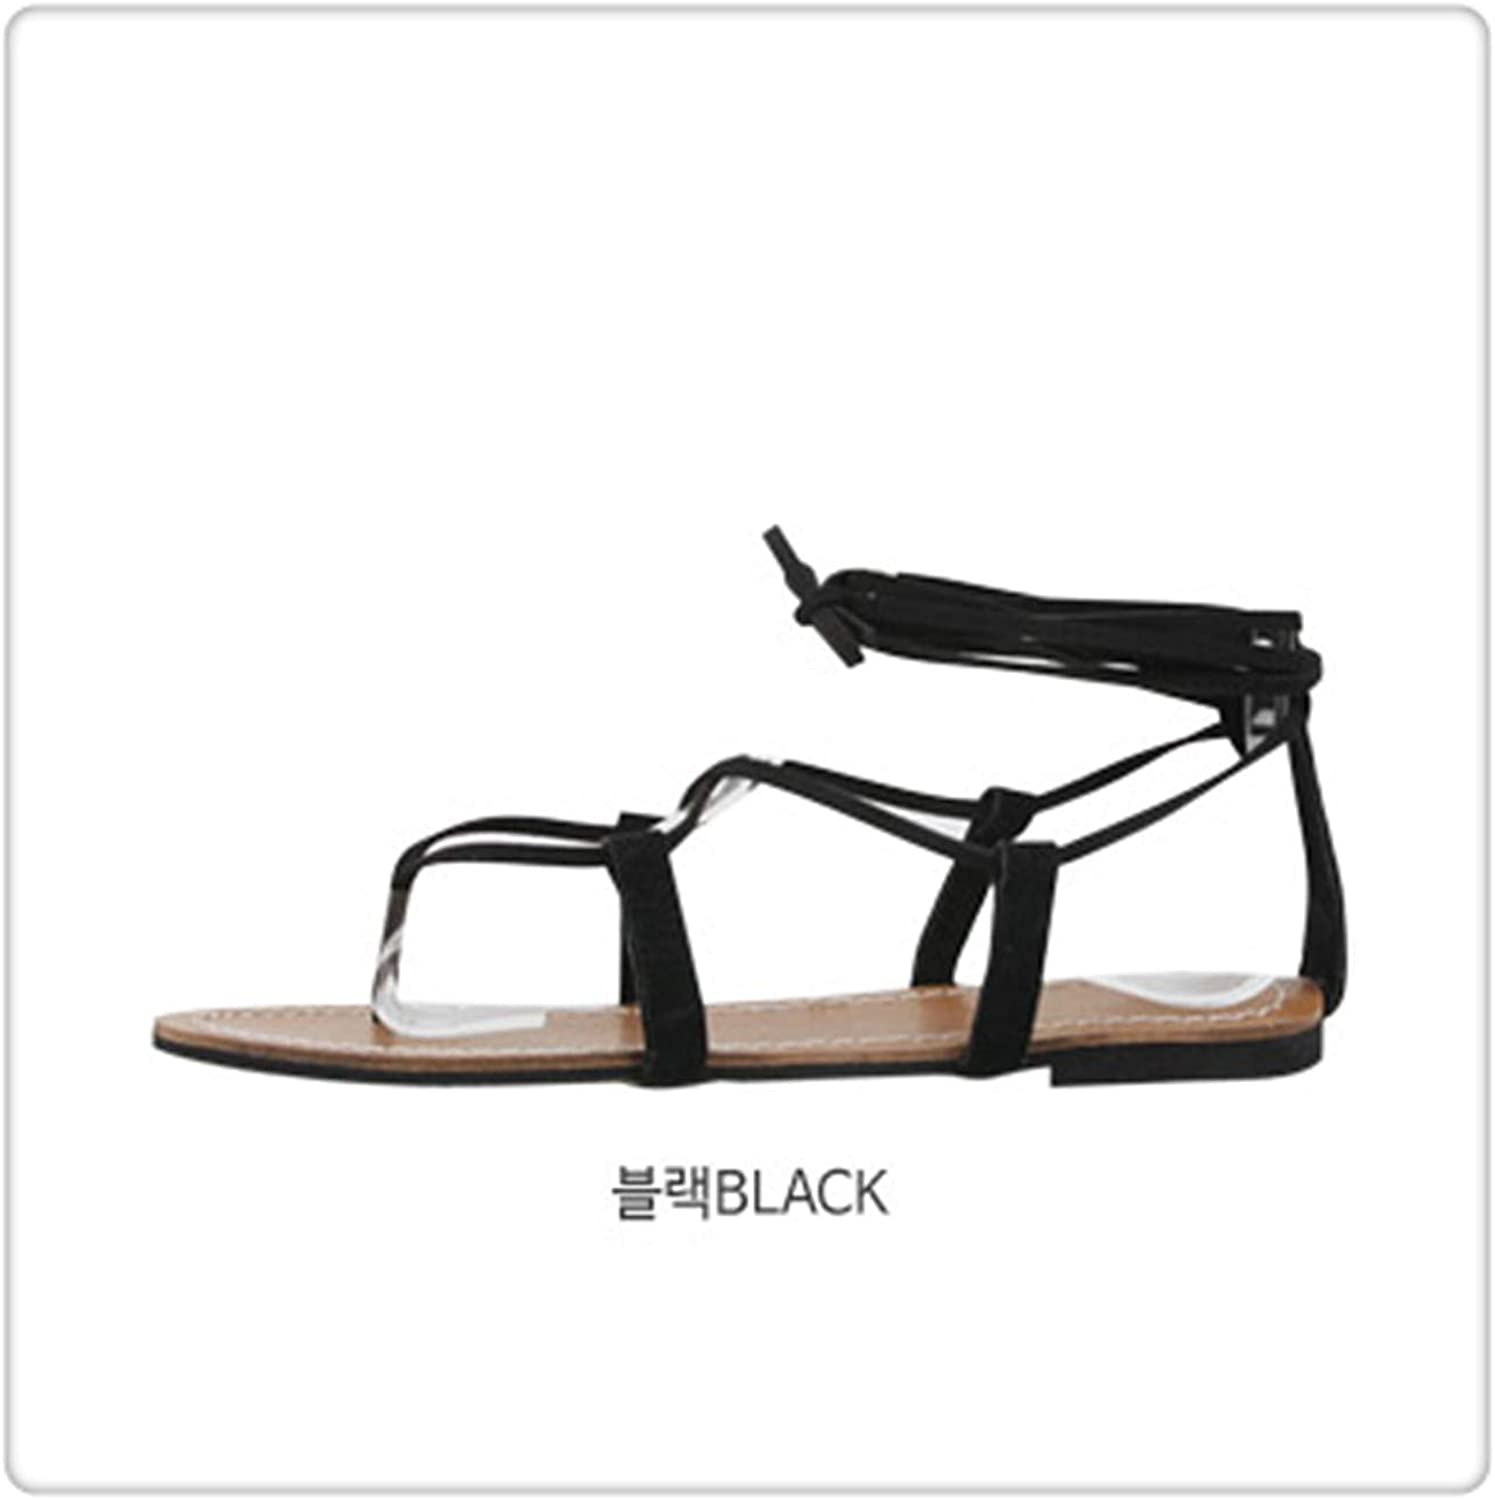 Yyixianma Sandals Women's Strap Summer Flat Fairy Wind Bohemian Beach Seaside Roman Tie